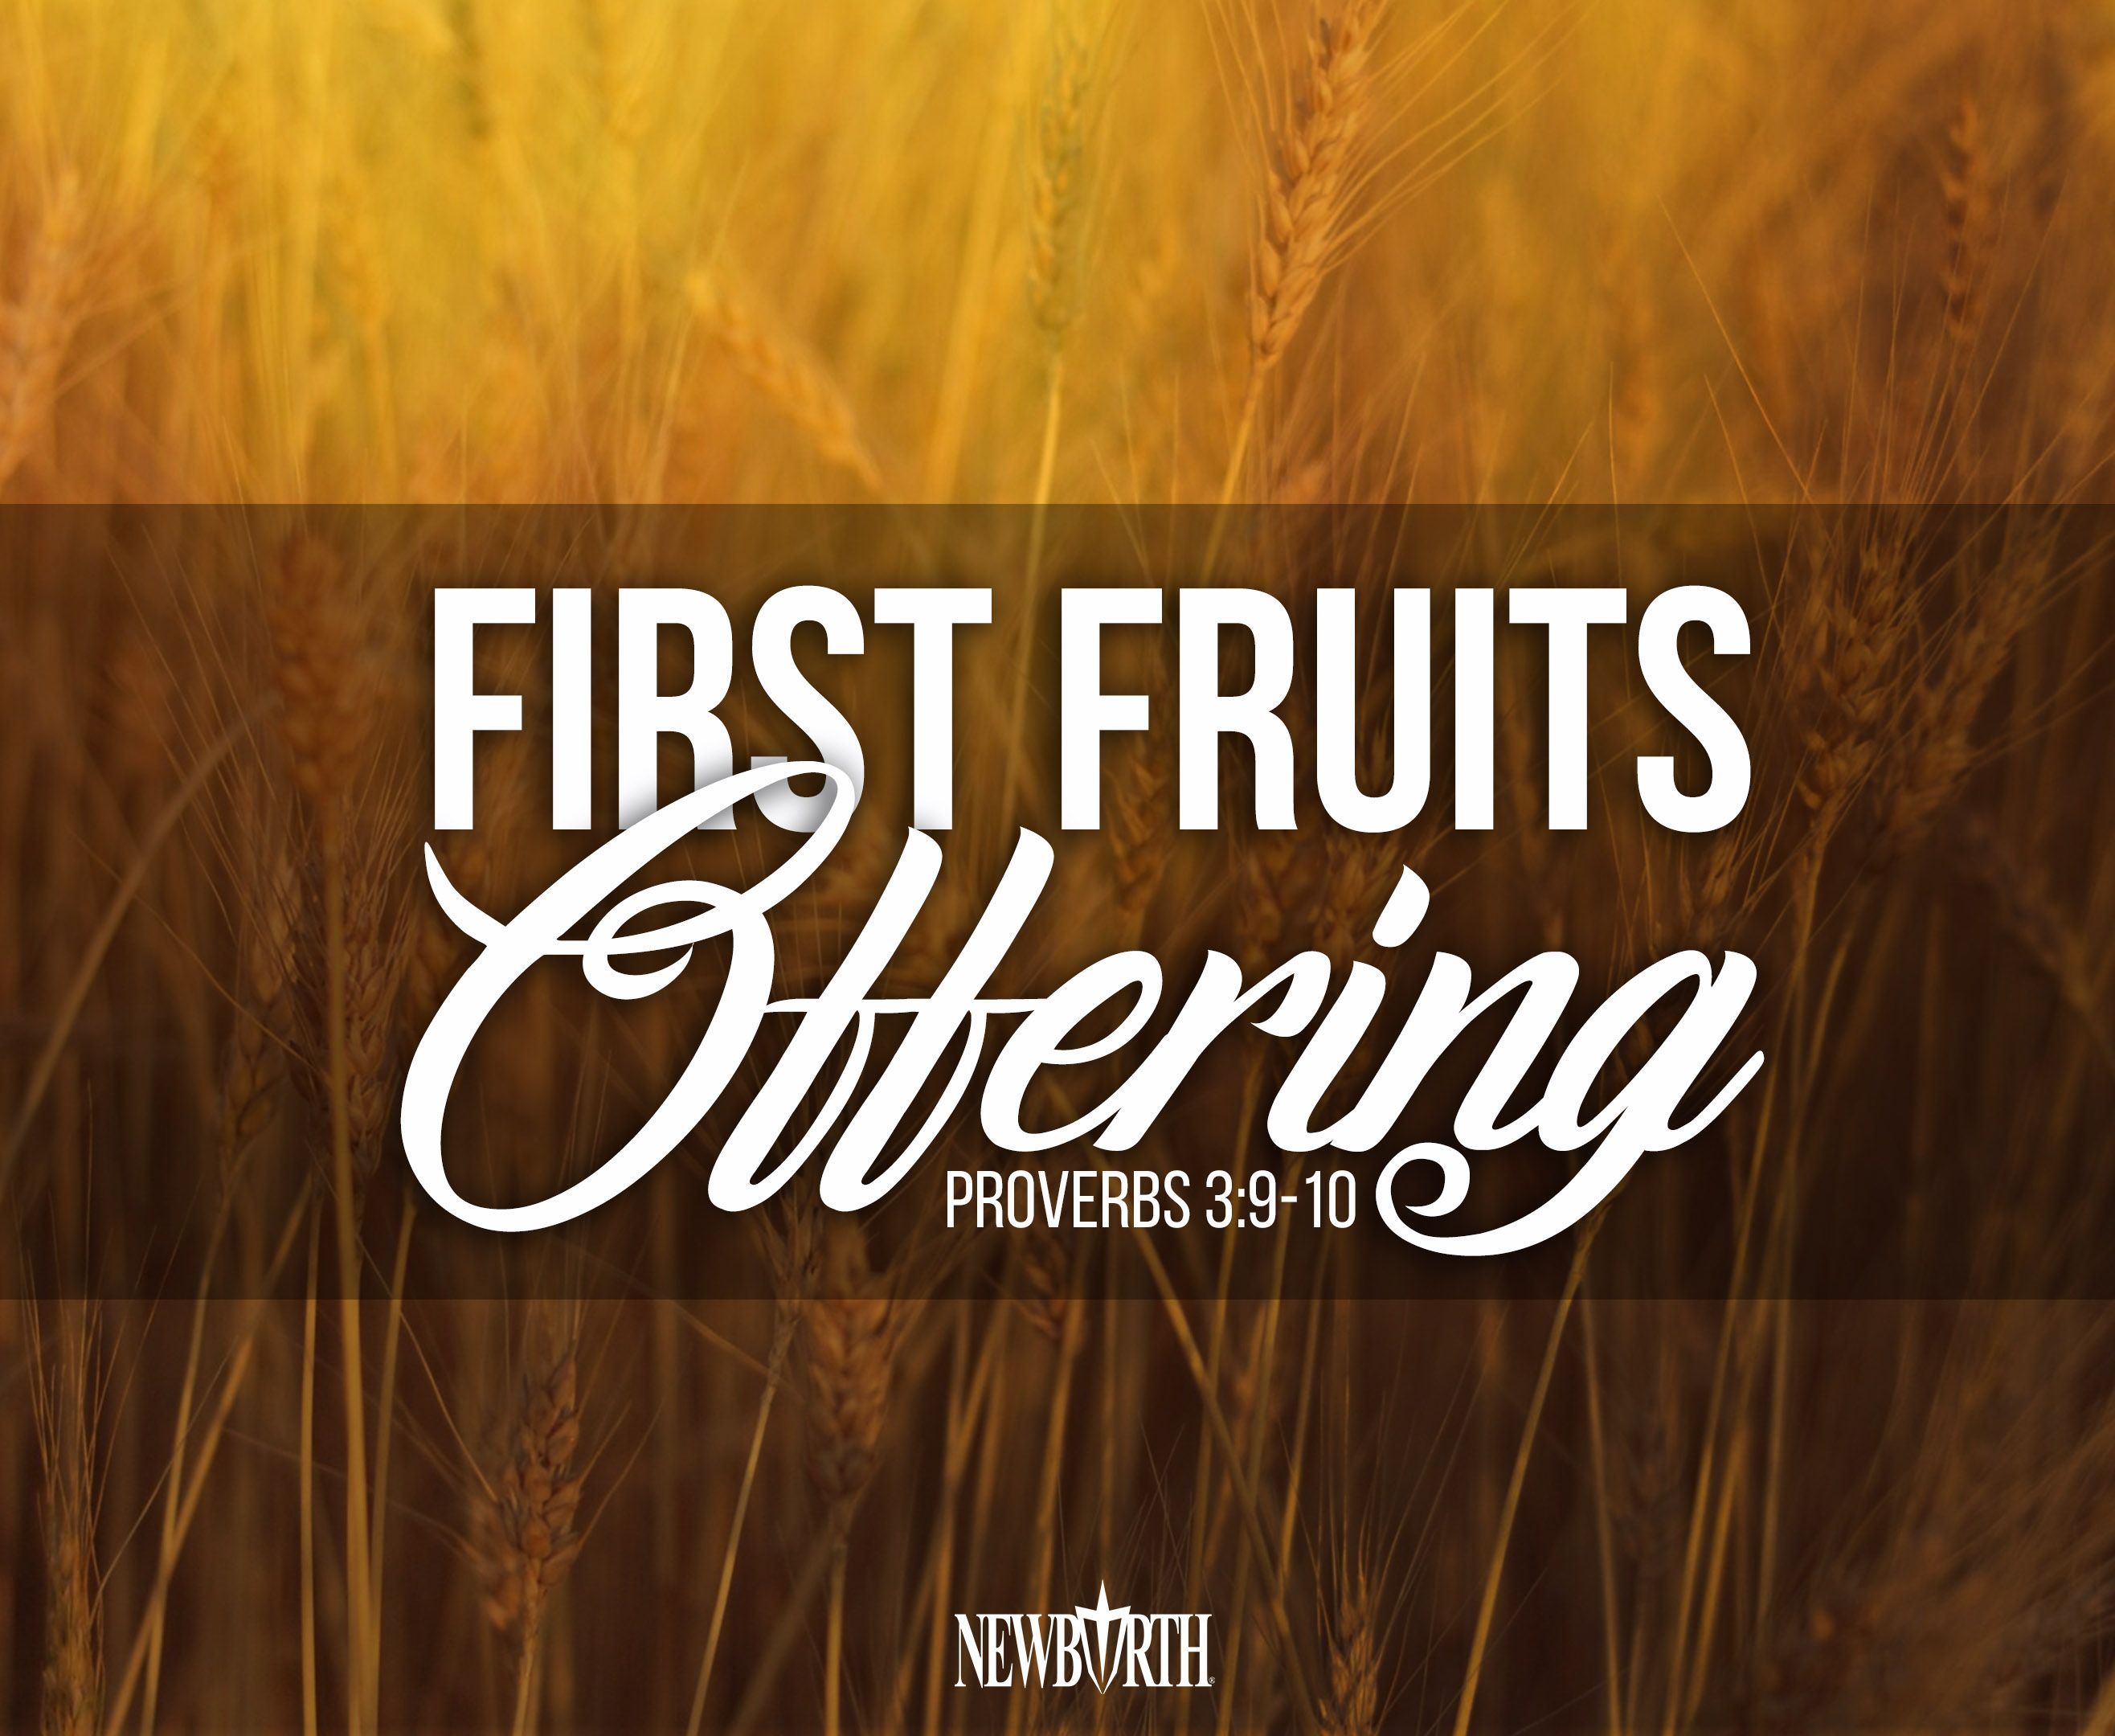 First Fruits Offering Encouragement Quotes Christian Encouragement Quotes Christian Encouragement